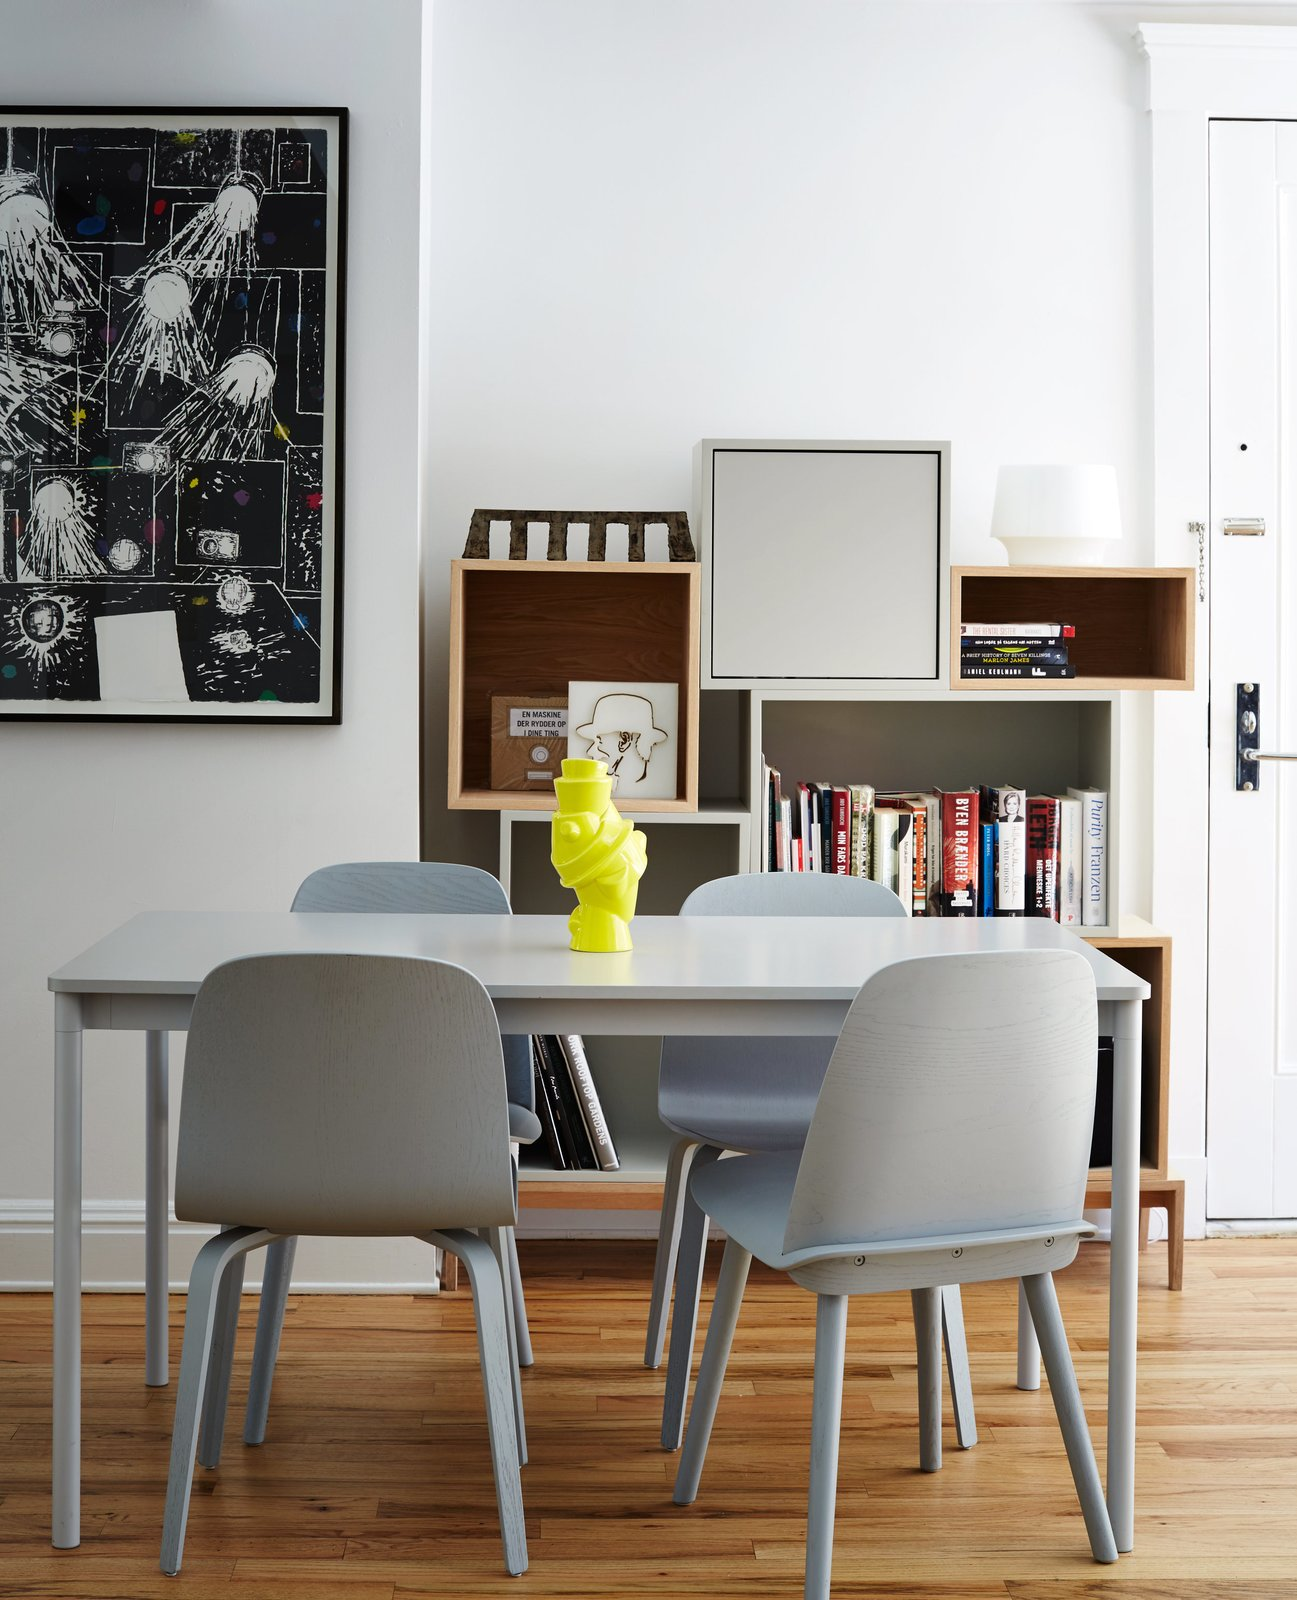 Dining Room, Chair, Table, and Medium Hardwood Floor A neon vase by Michael Geertsen contrasts with a gray Base table by Mika Tolvanen and coordinating Nerd and Visu chairs, all for Muuto.  Photo 8 of 14 in A Danish Design Kingpin Moves to NYC with a Shipping Container of Furniture in Tow